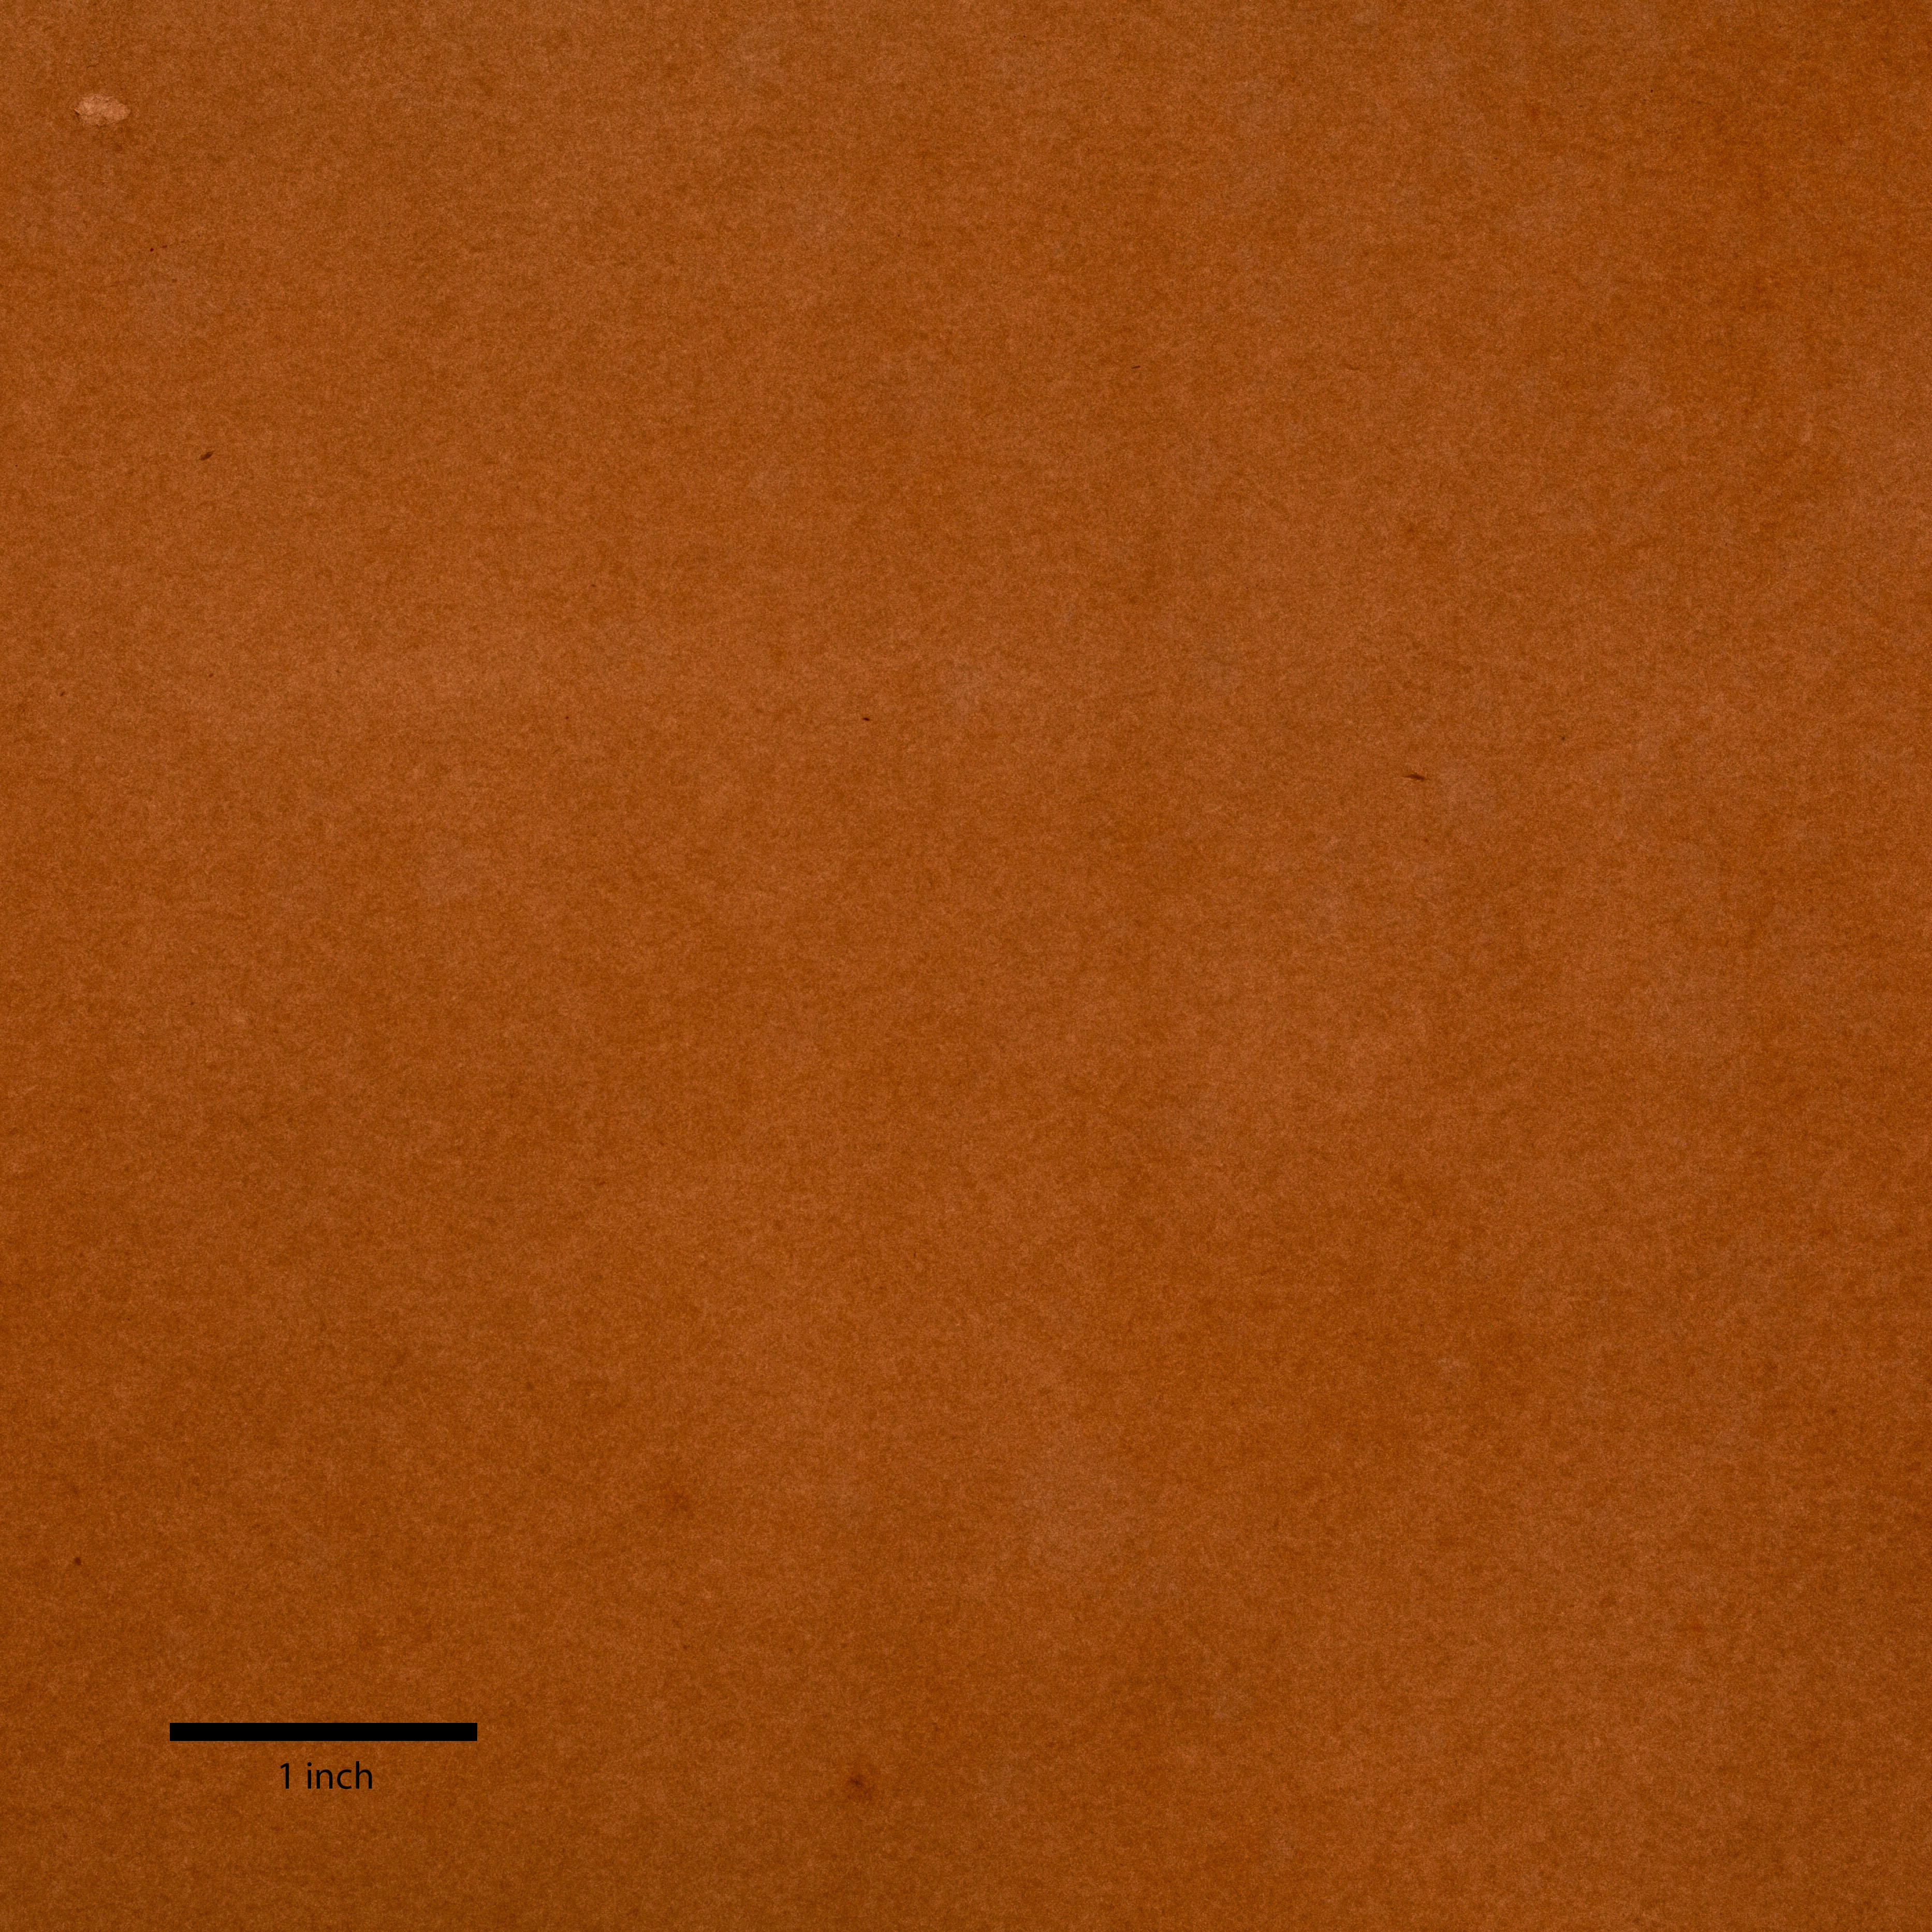 A smooth reddish-brown sheet of paper illuminated from the back. A thick black line marks one inch at bottom left.